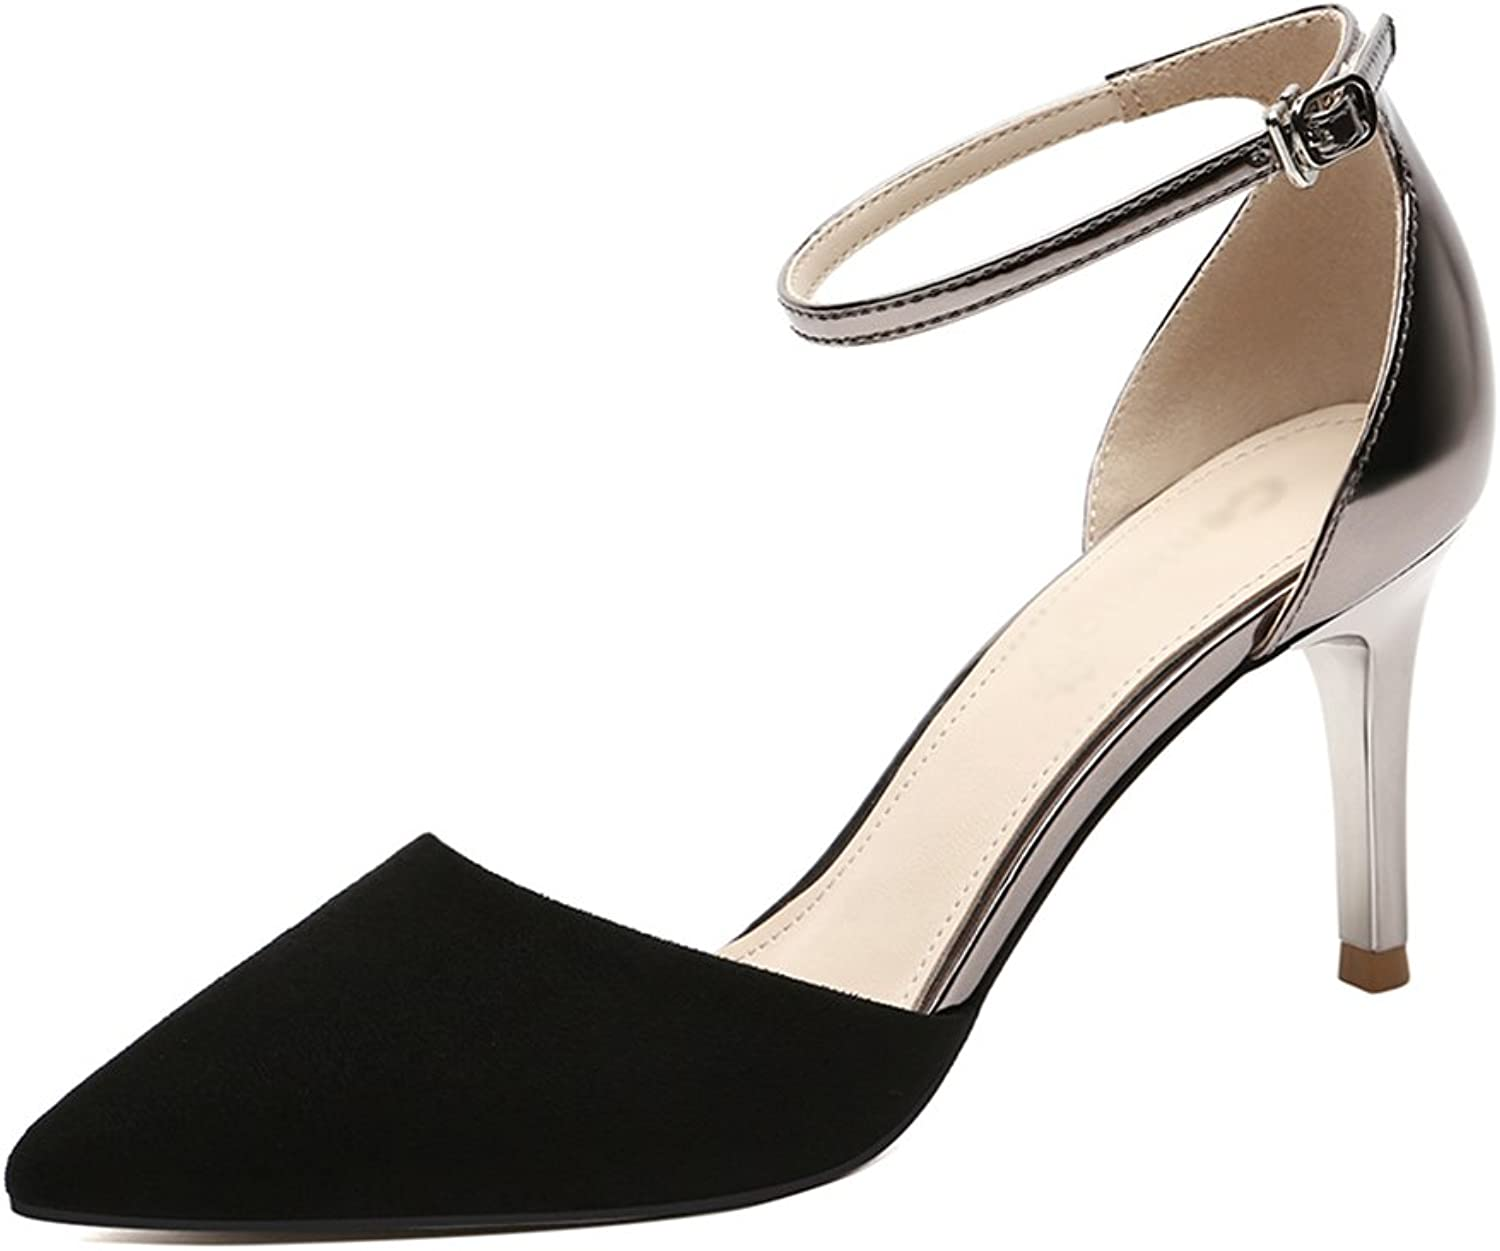 Sandals Female Summer Women's shoes Thin High Heels Ms (color   Black, Size   35)